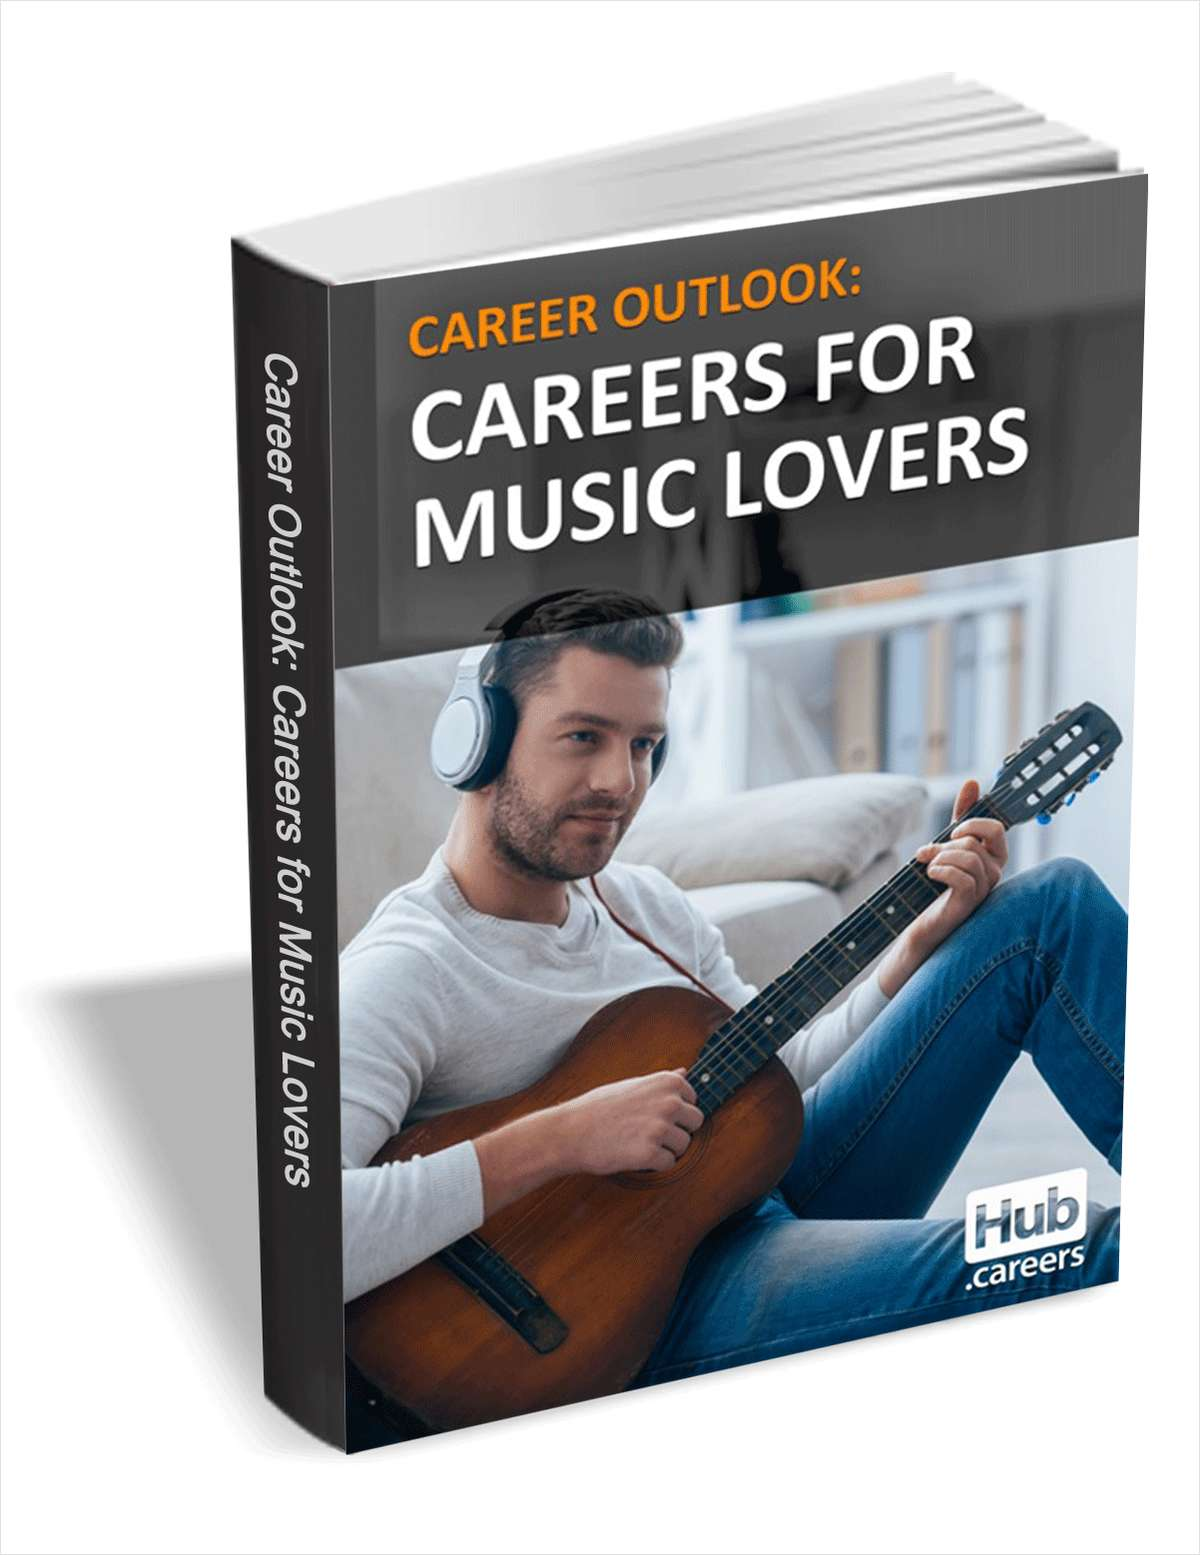 Careers for Music Lovers - Career Outlook